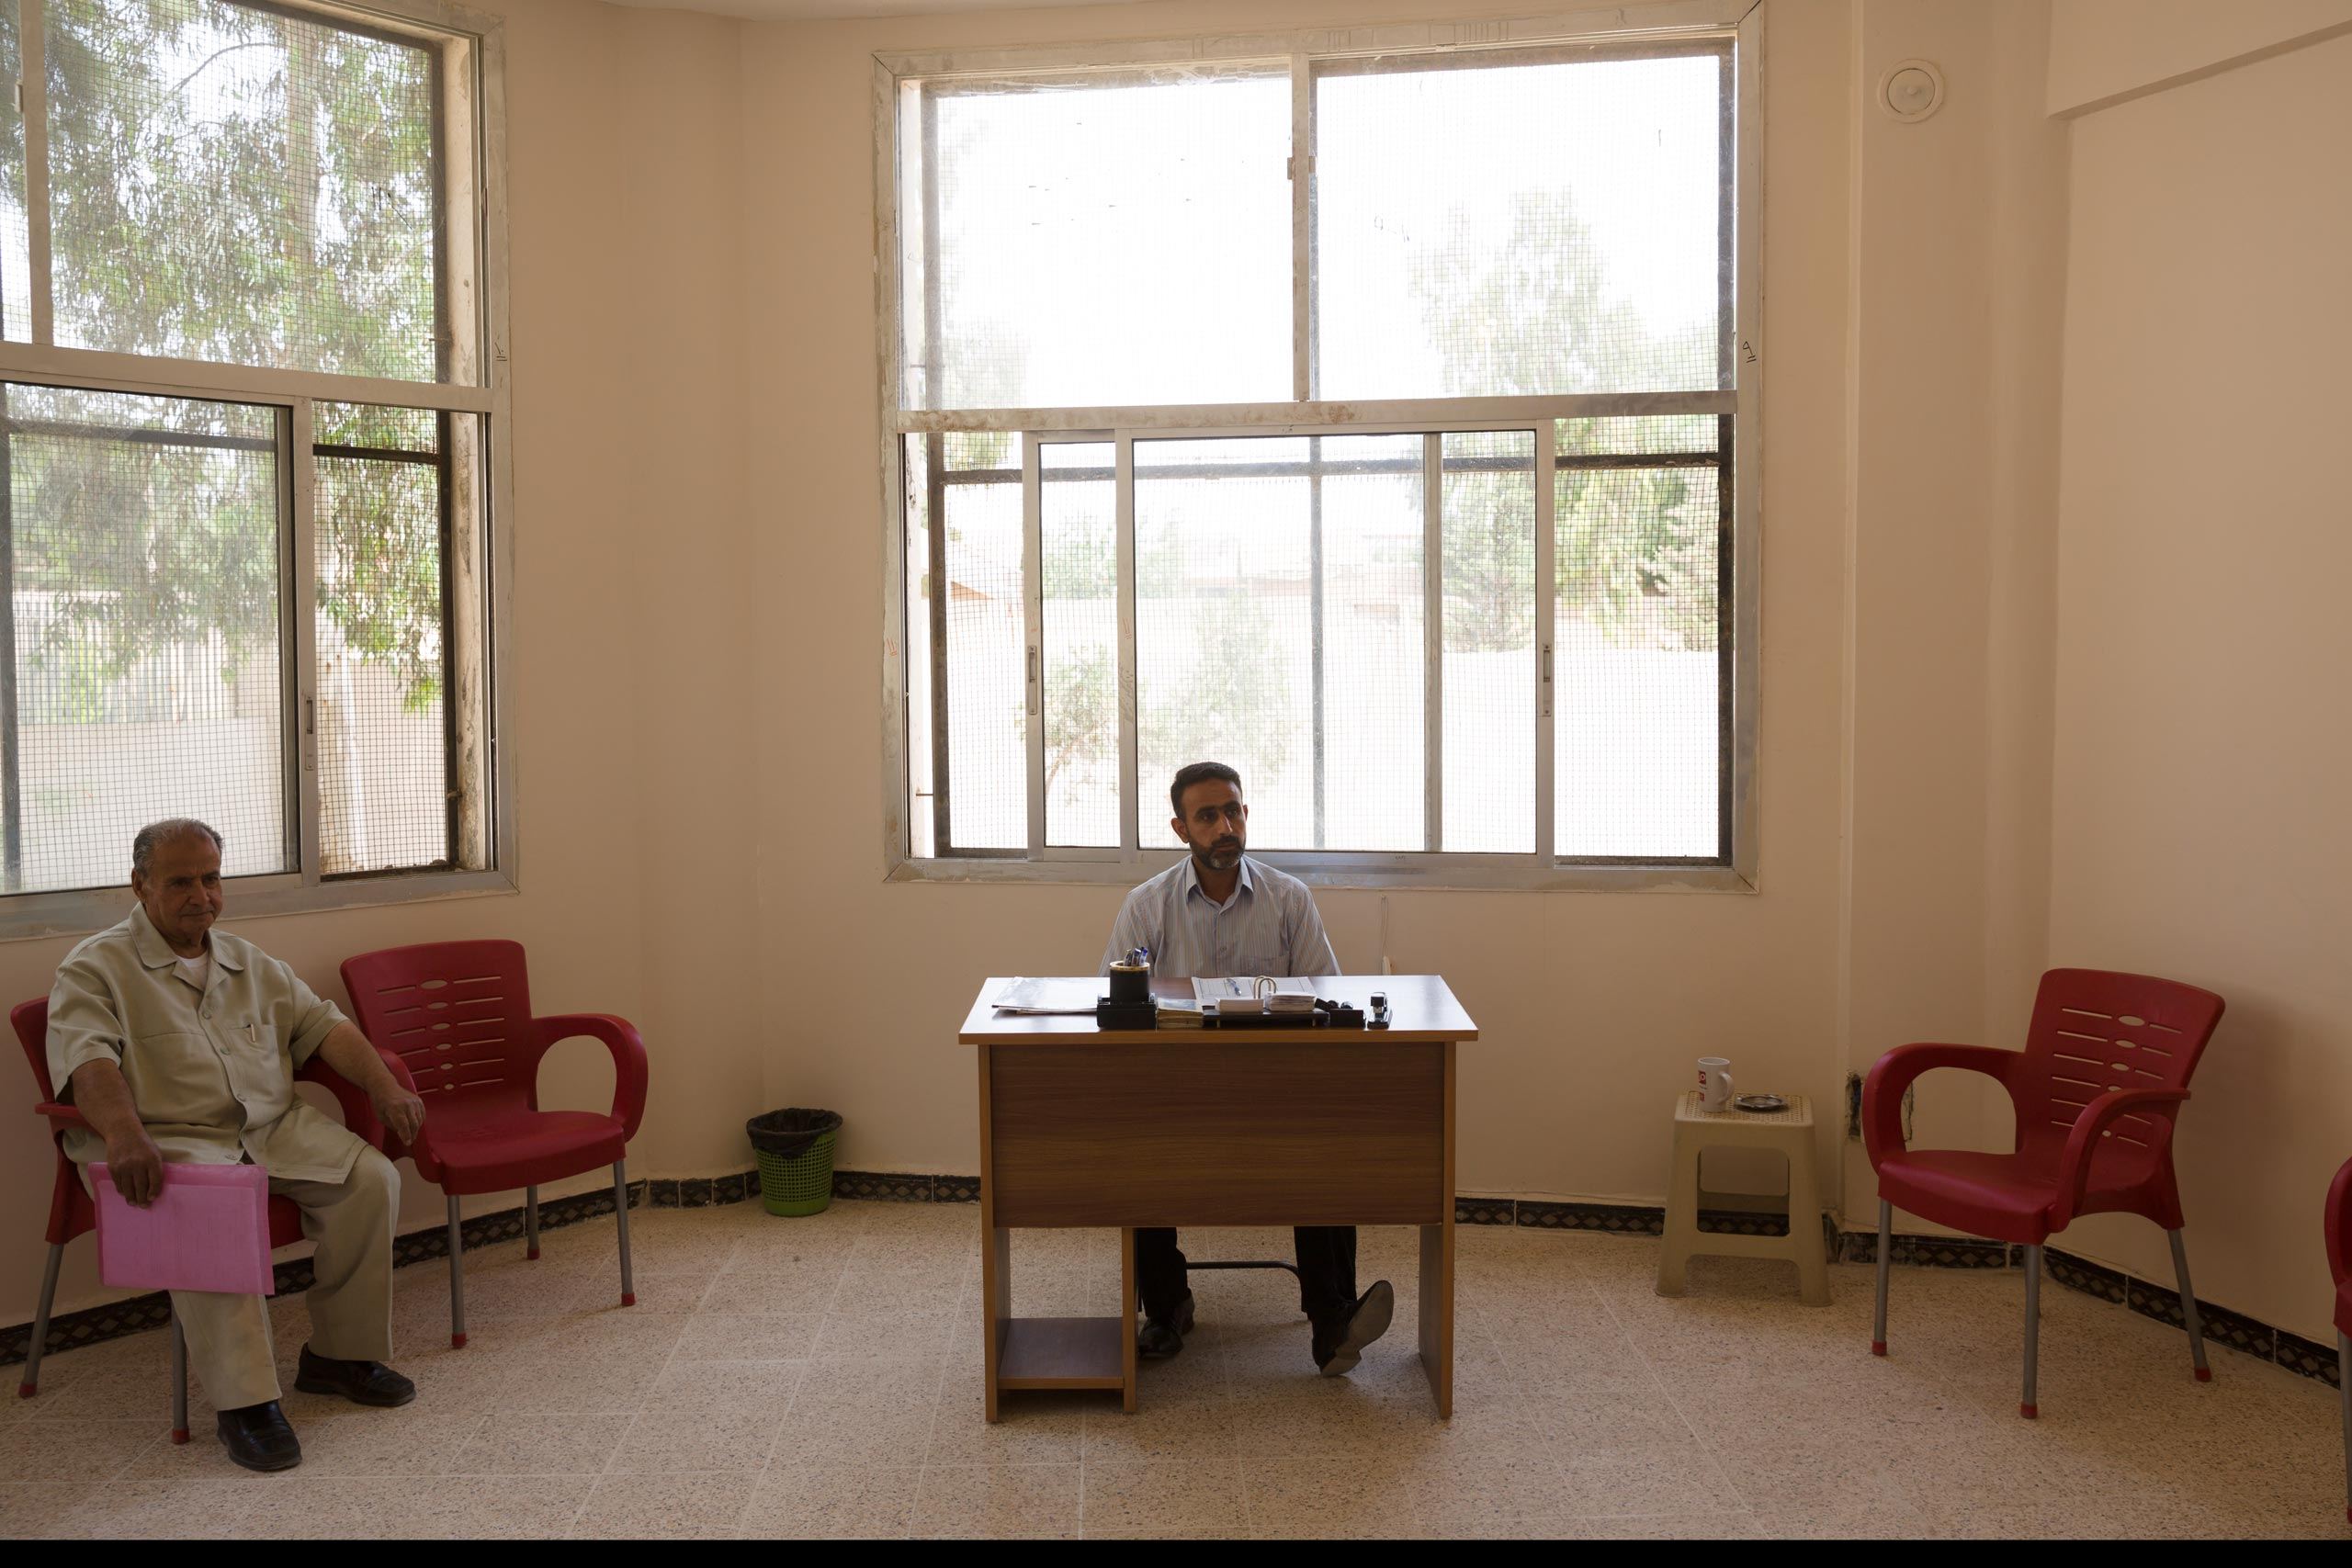 A judge in in a temporary office of Deir-ez Zor's  state-run court handles mainly administrative matters like birth and wedding certificates. In areas in Syria and Iraq where ISIS is in control, Sharia law prevails, May 25, 2015.